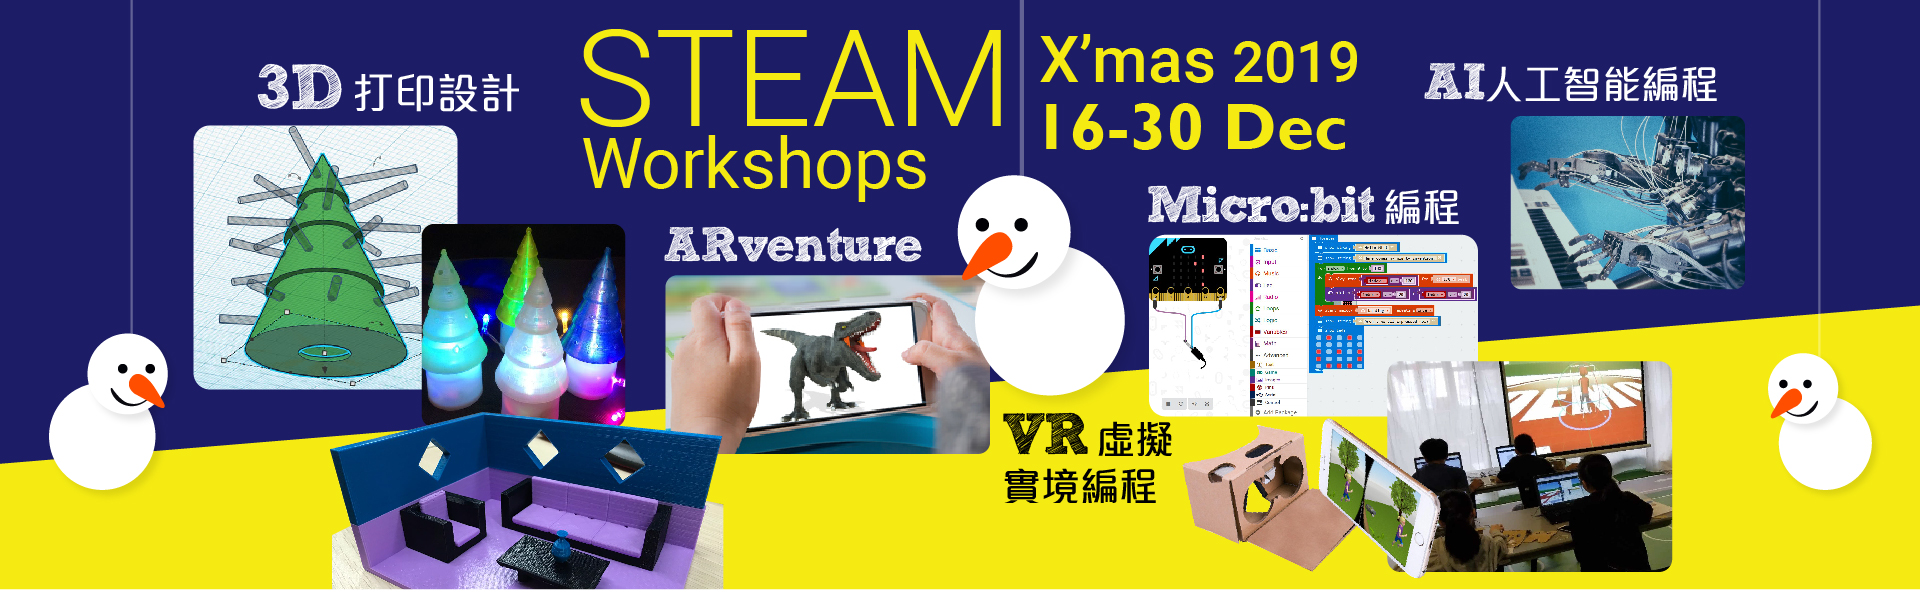 Xmas STEAM Workshops 2019